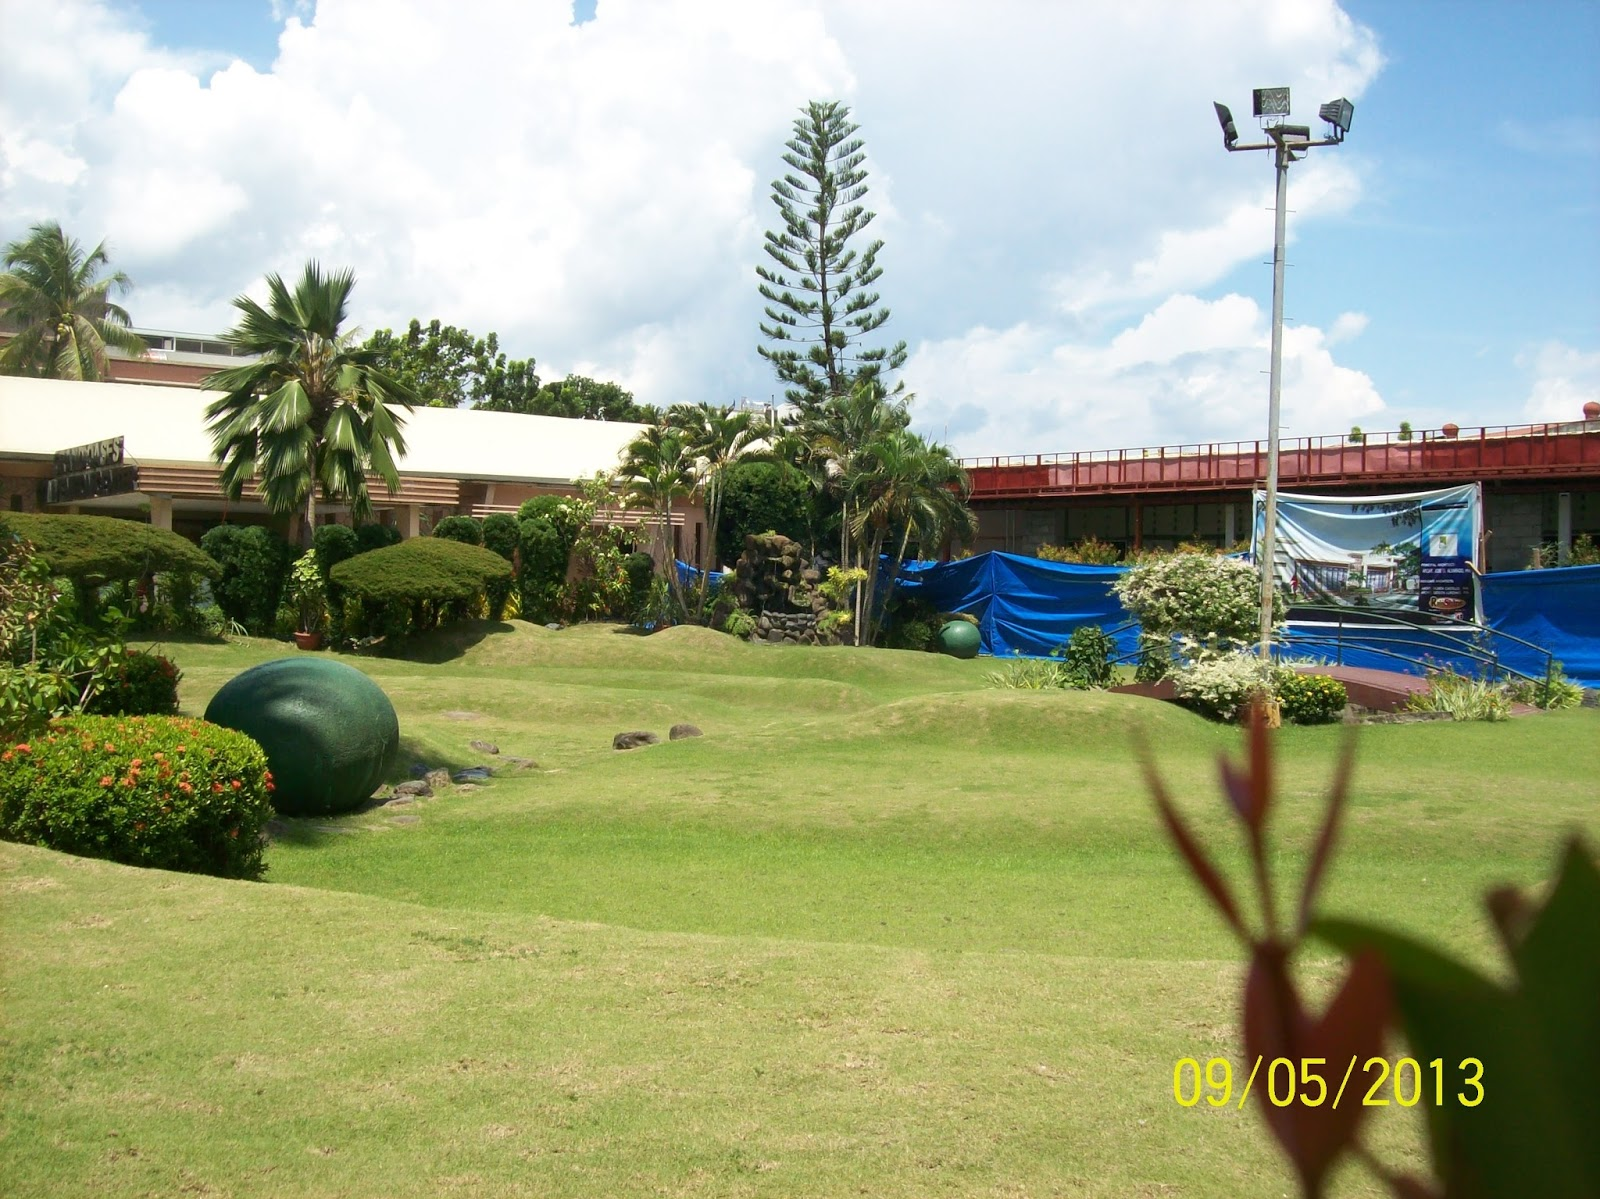 The ritz hotel at garden oases all about davao city for Garden city mini golf